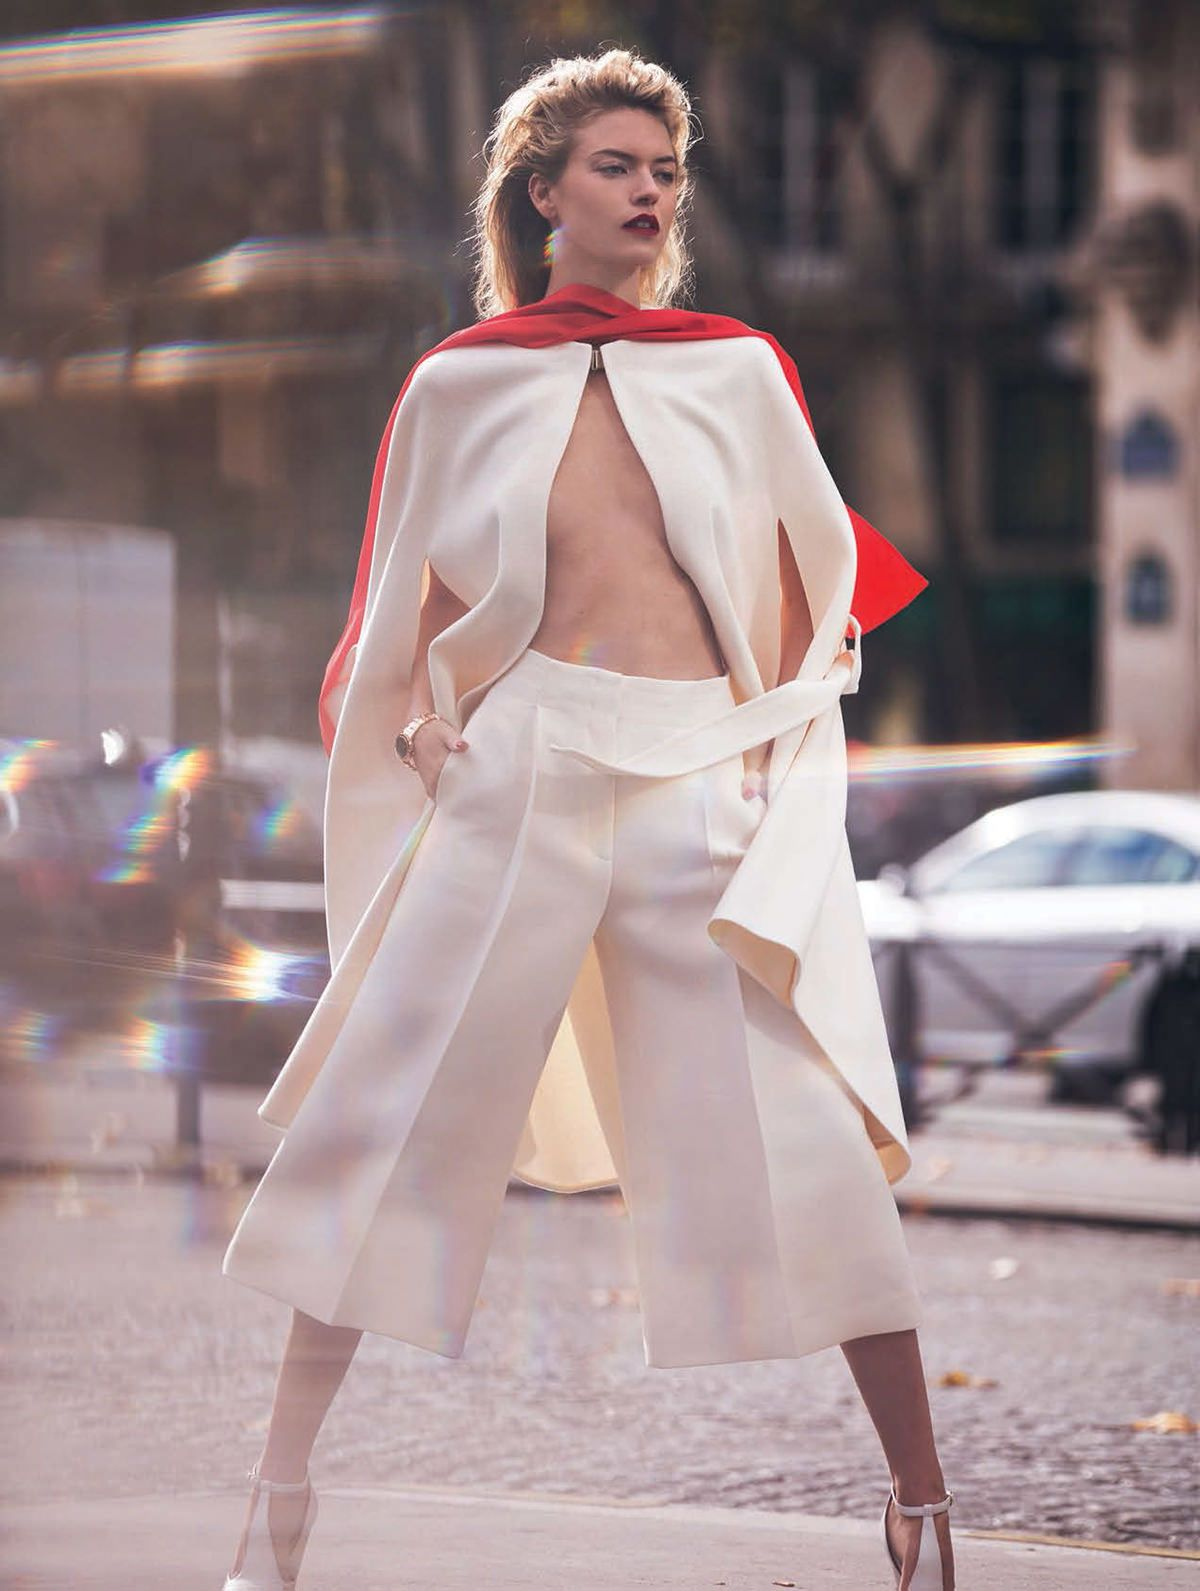 visual optimism; fashion editorials, shows, campaigns & more!: martha hunt by david bellemere for marie claire italia december 2014